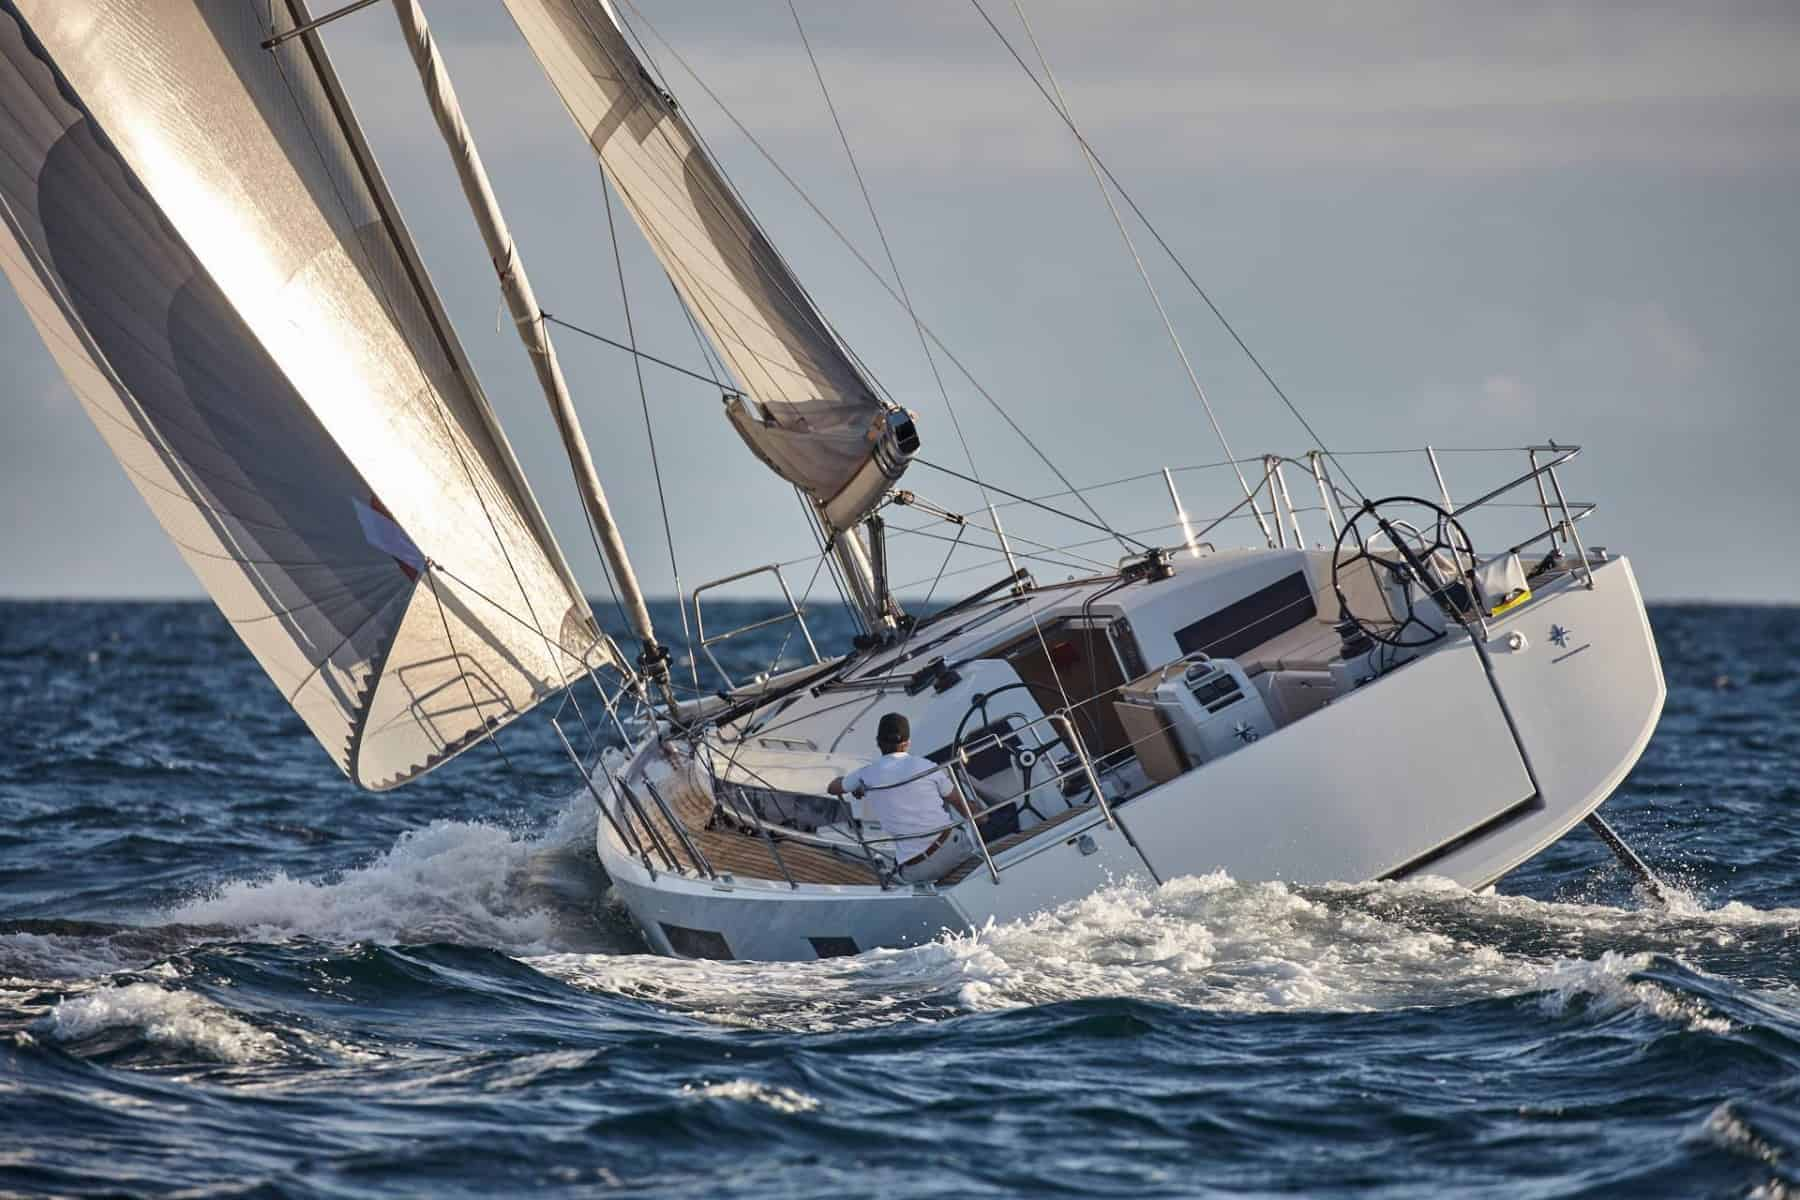 Jeanneau Sun Odyssey 440 from behind with wind in its sail